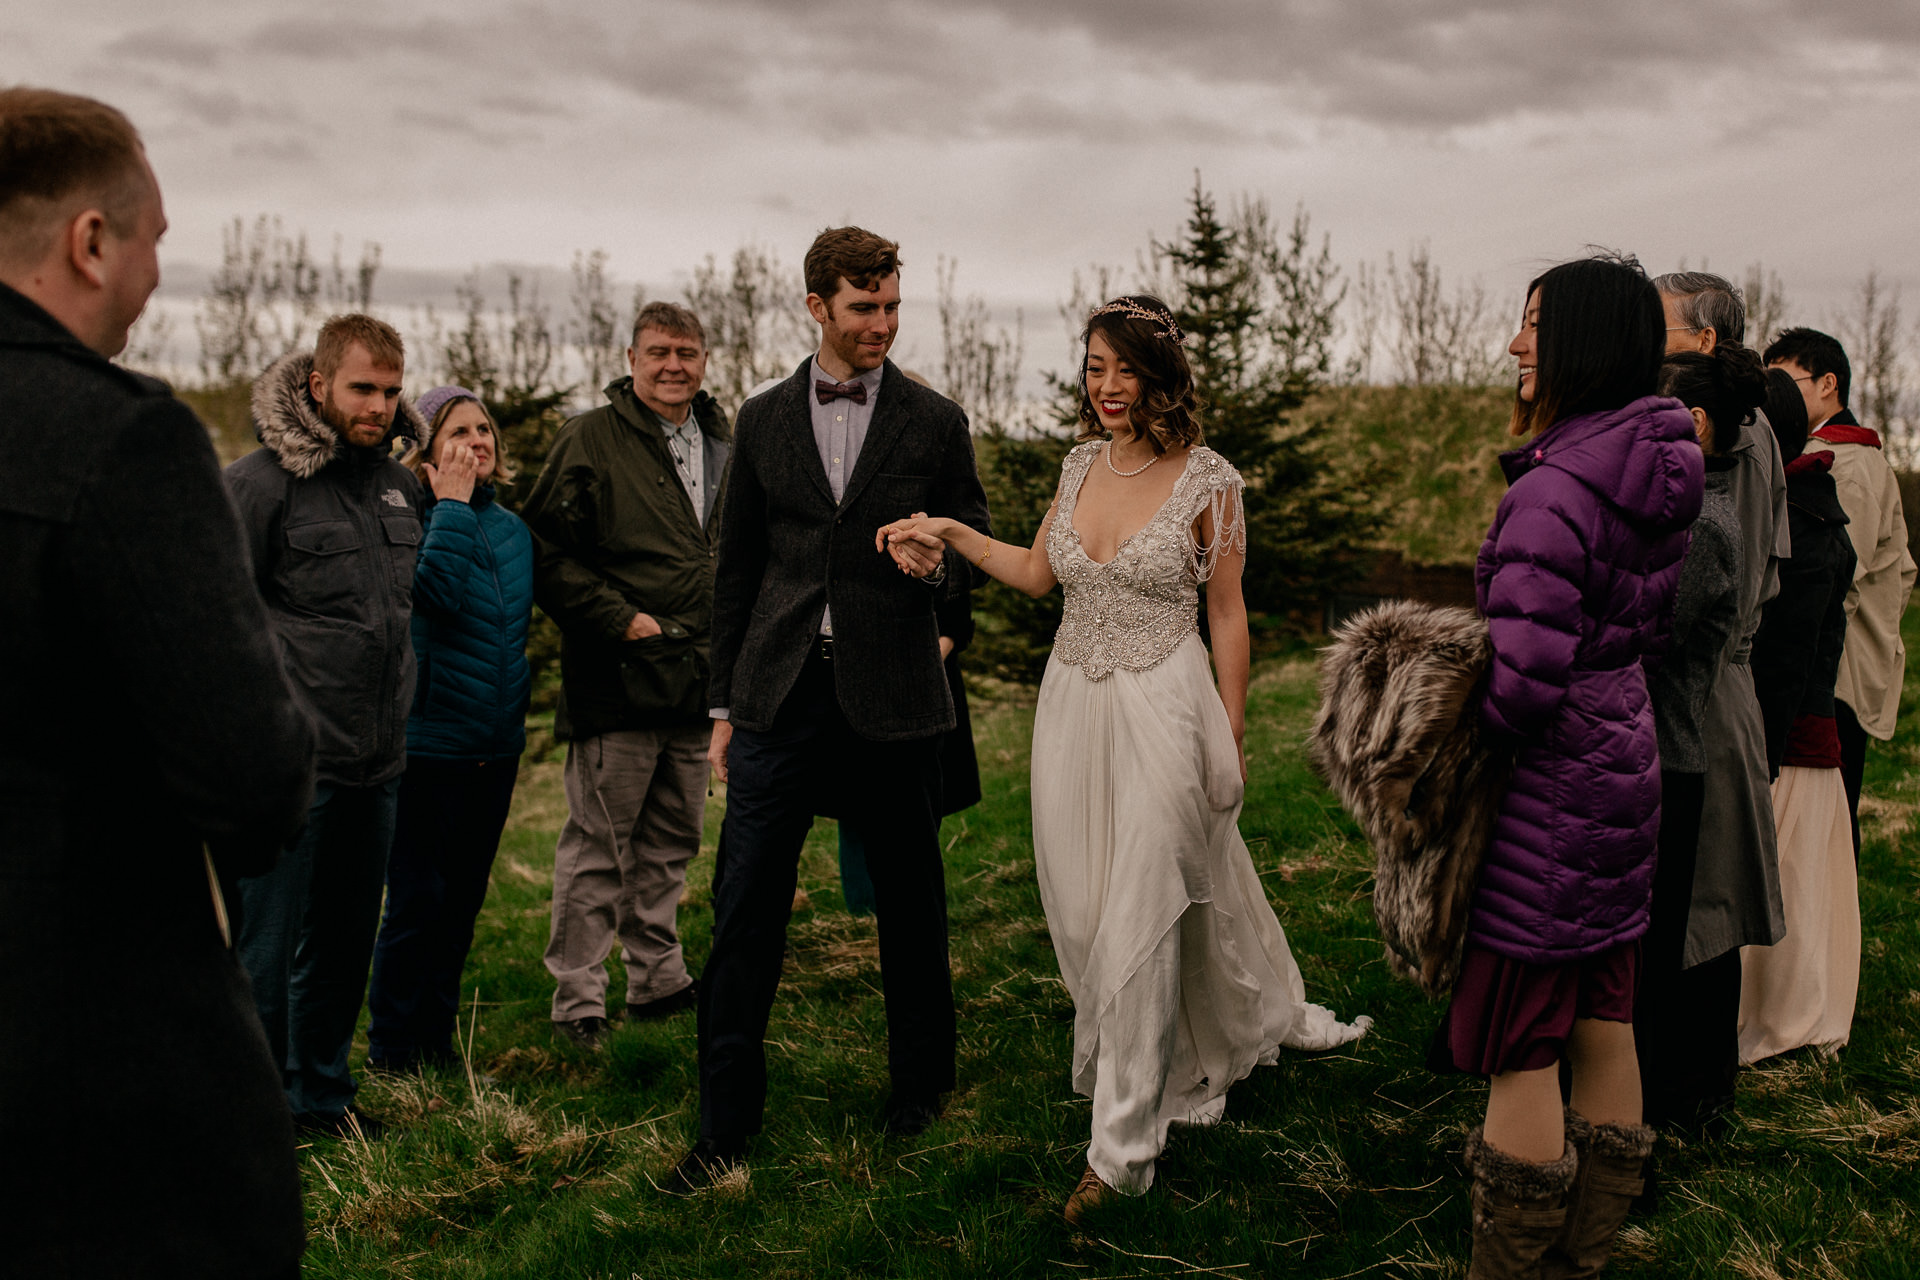 iceland wedding photographer-hella wedding ceremony-first look bride and groom